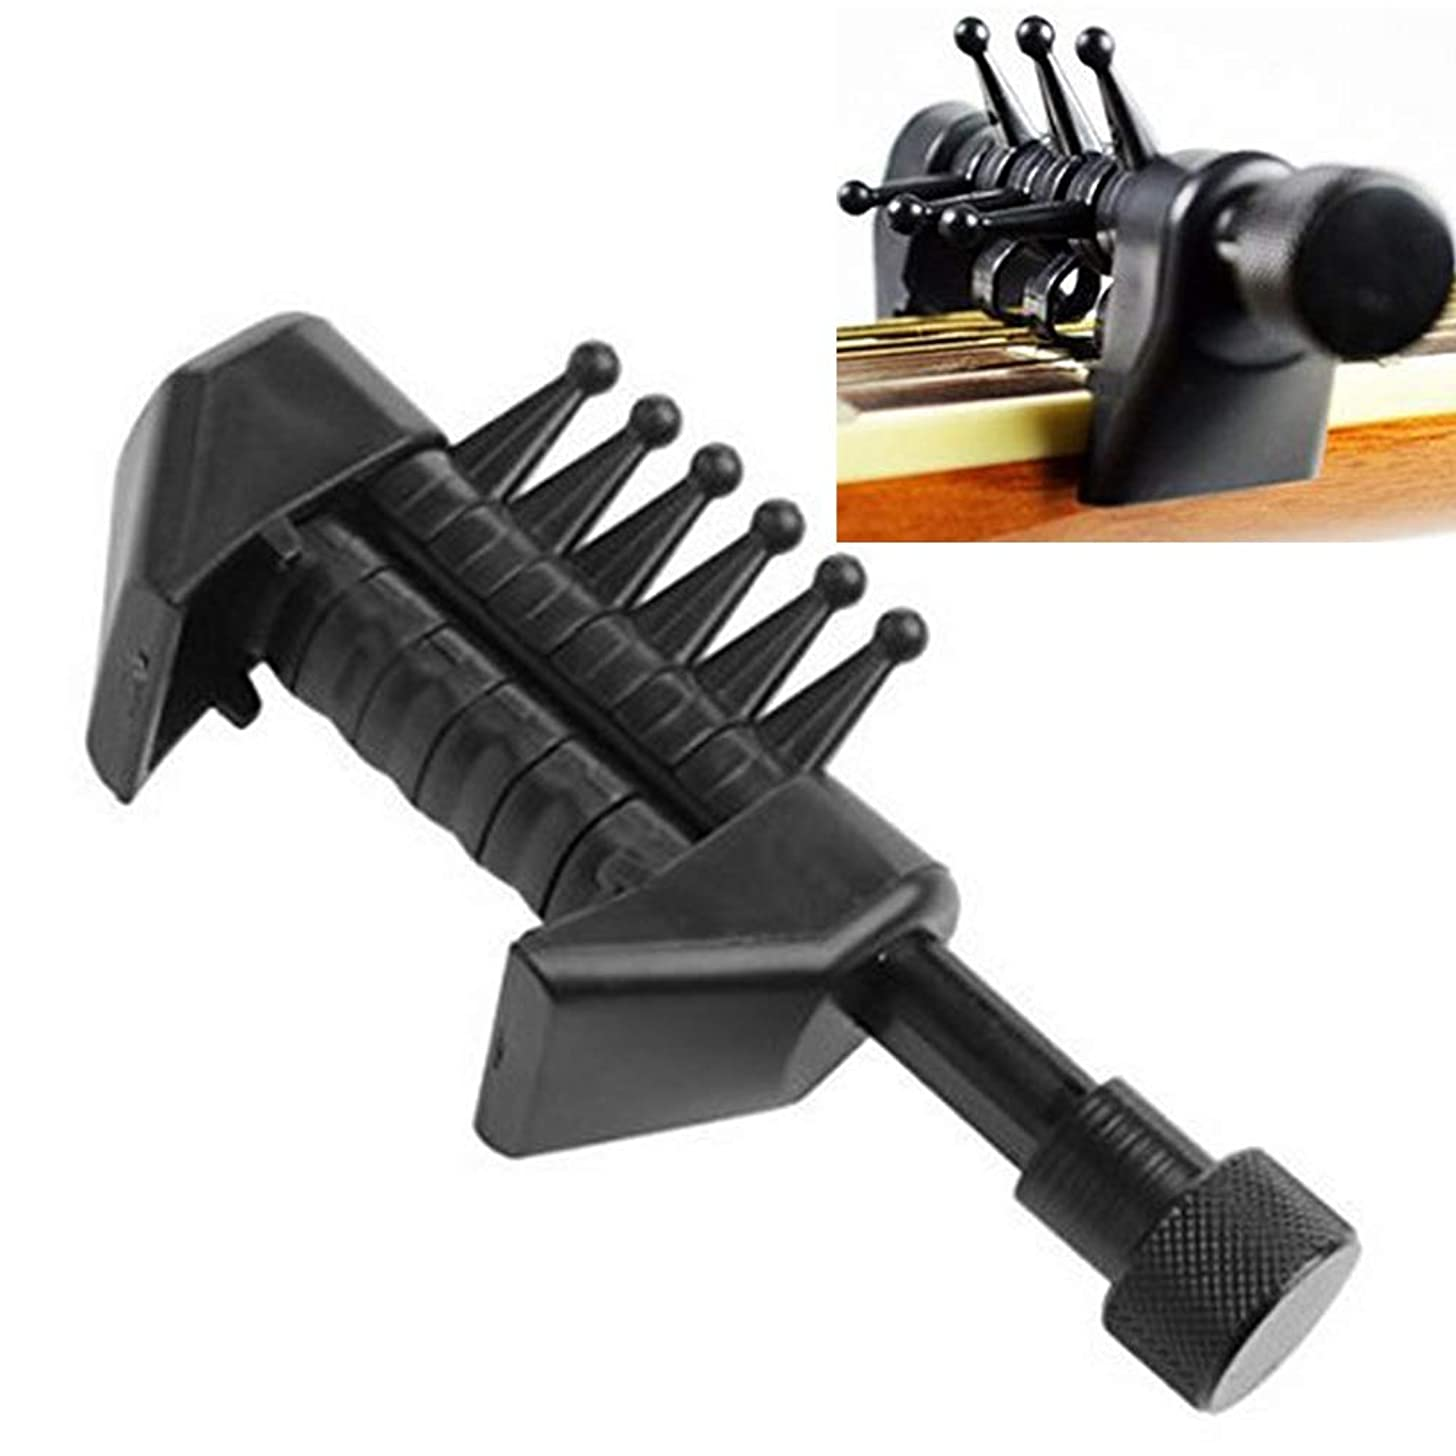 Guitar Capo Acoustic Guitar Capo Clamp Accessories Quick Release for Ukulele, Acoustic and Electric Guitar (Black)